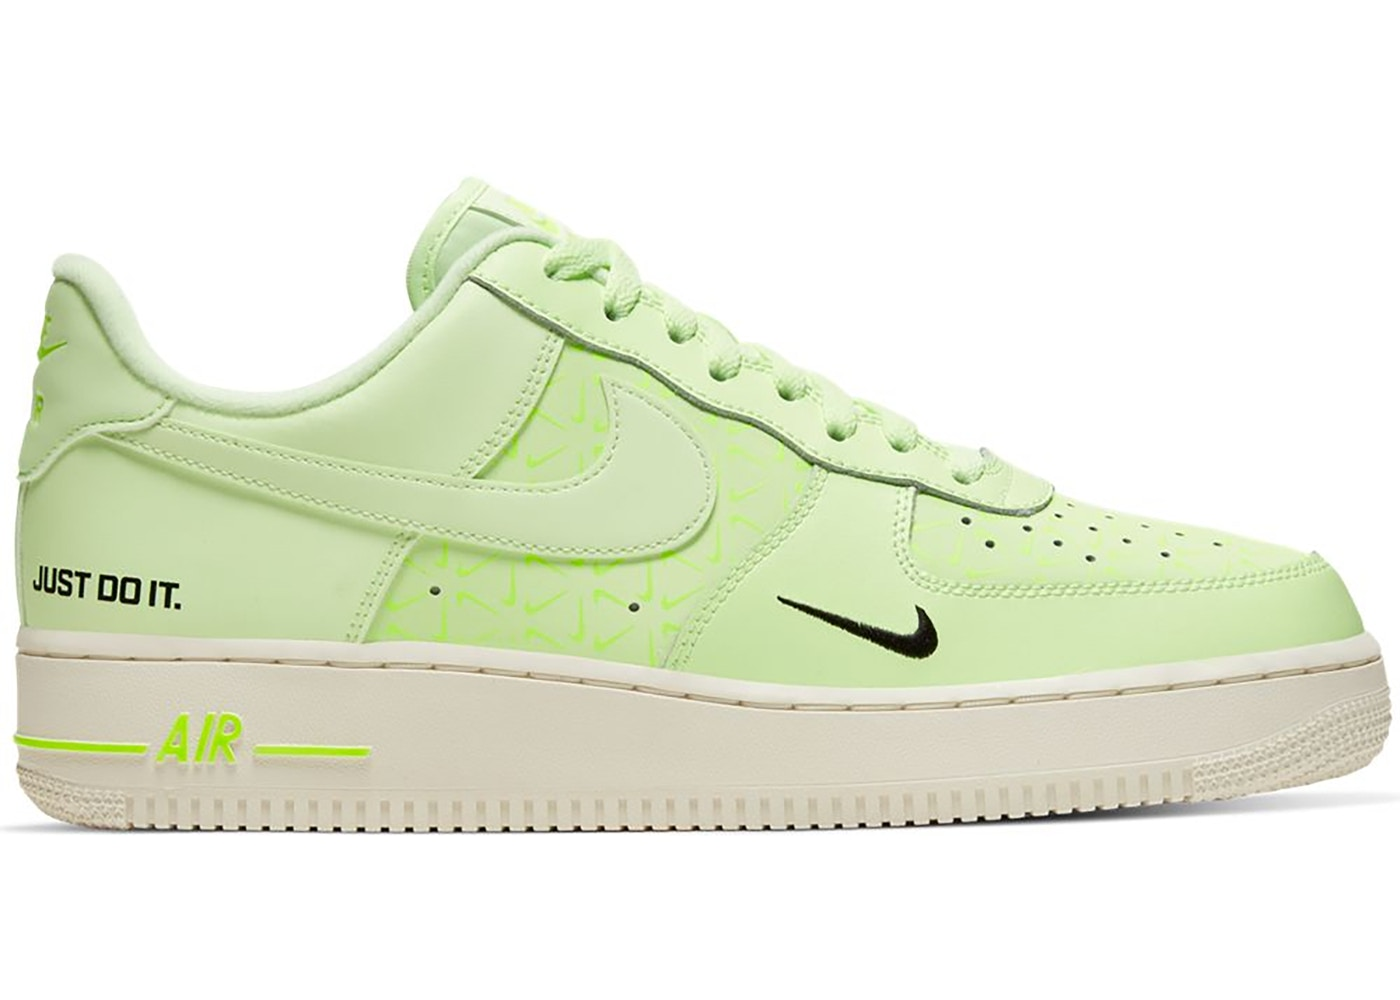 Nike Air Force 1 Shoes Release Date